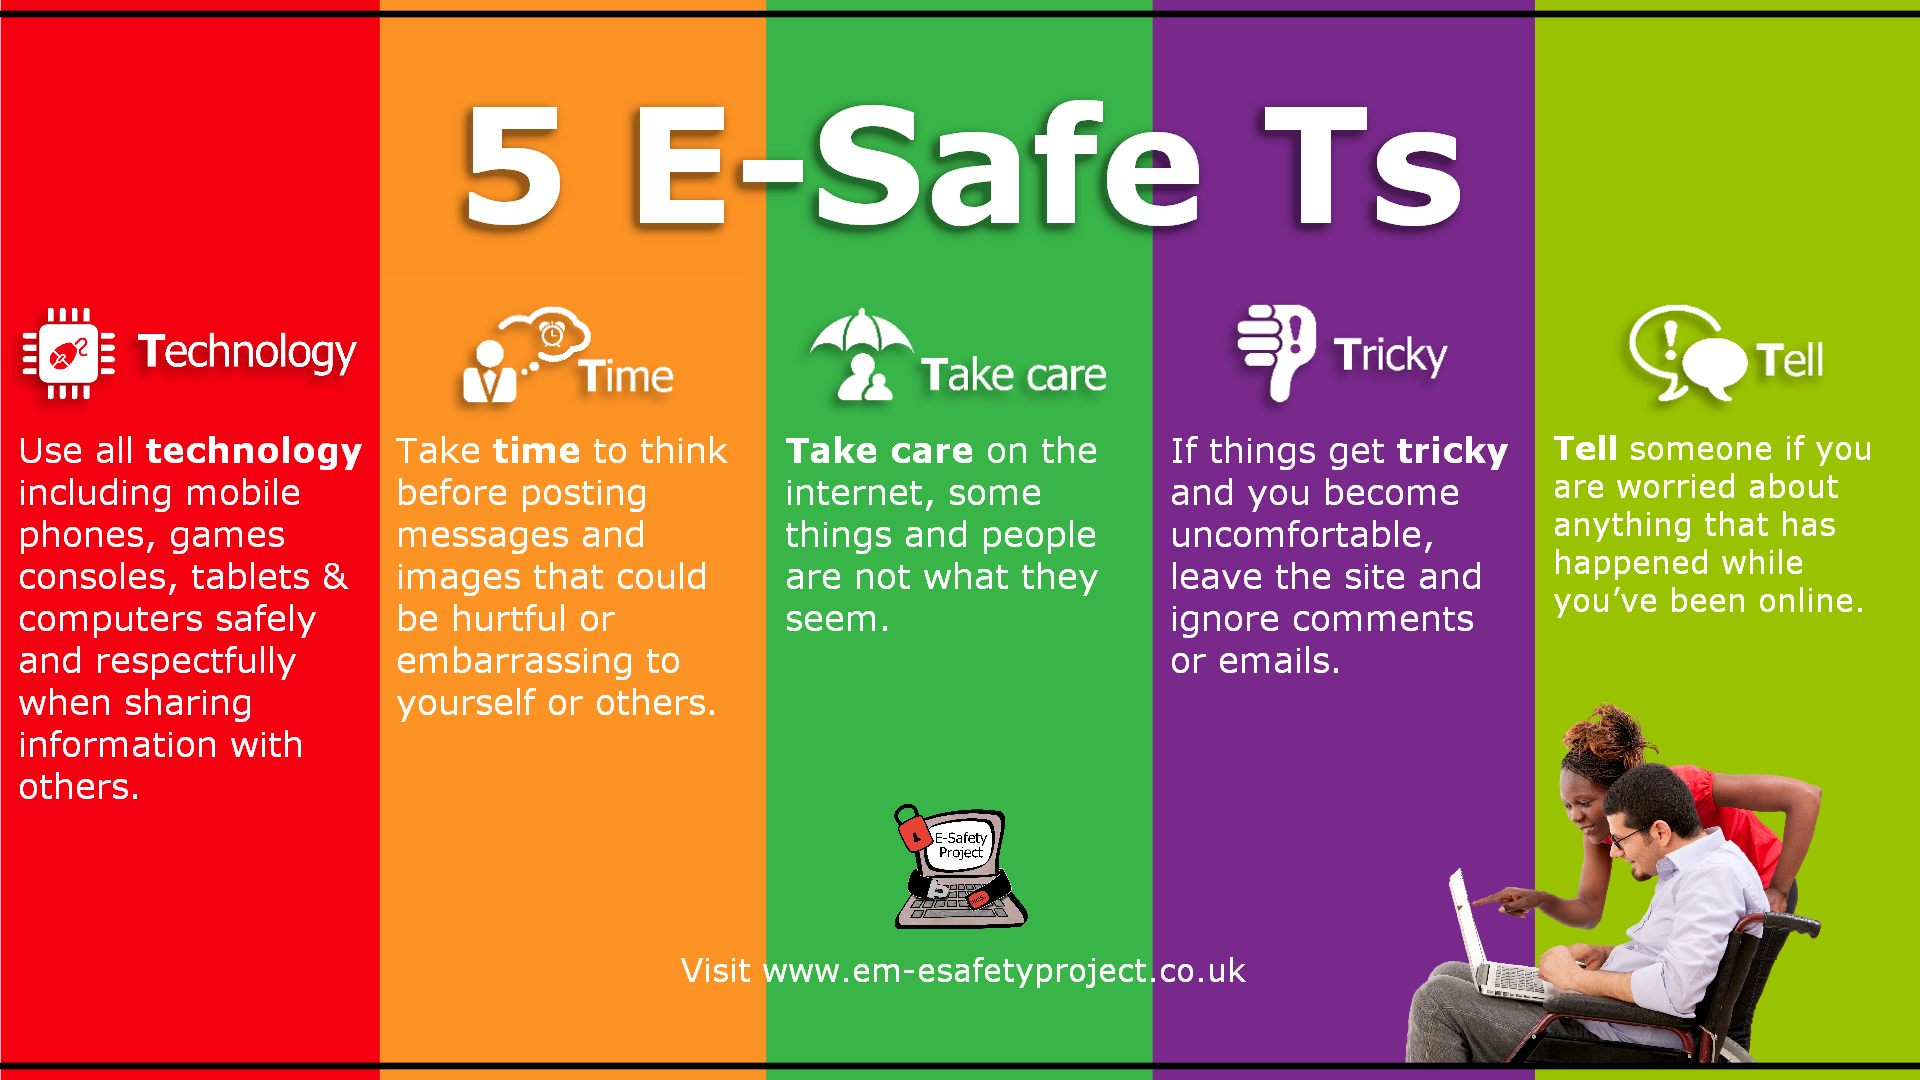 e_safety_5ts_desktop_background_1920x1080_all_in_one